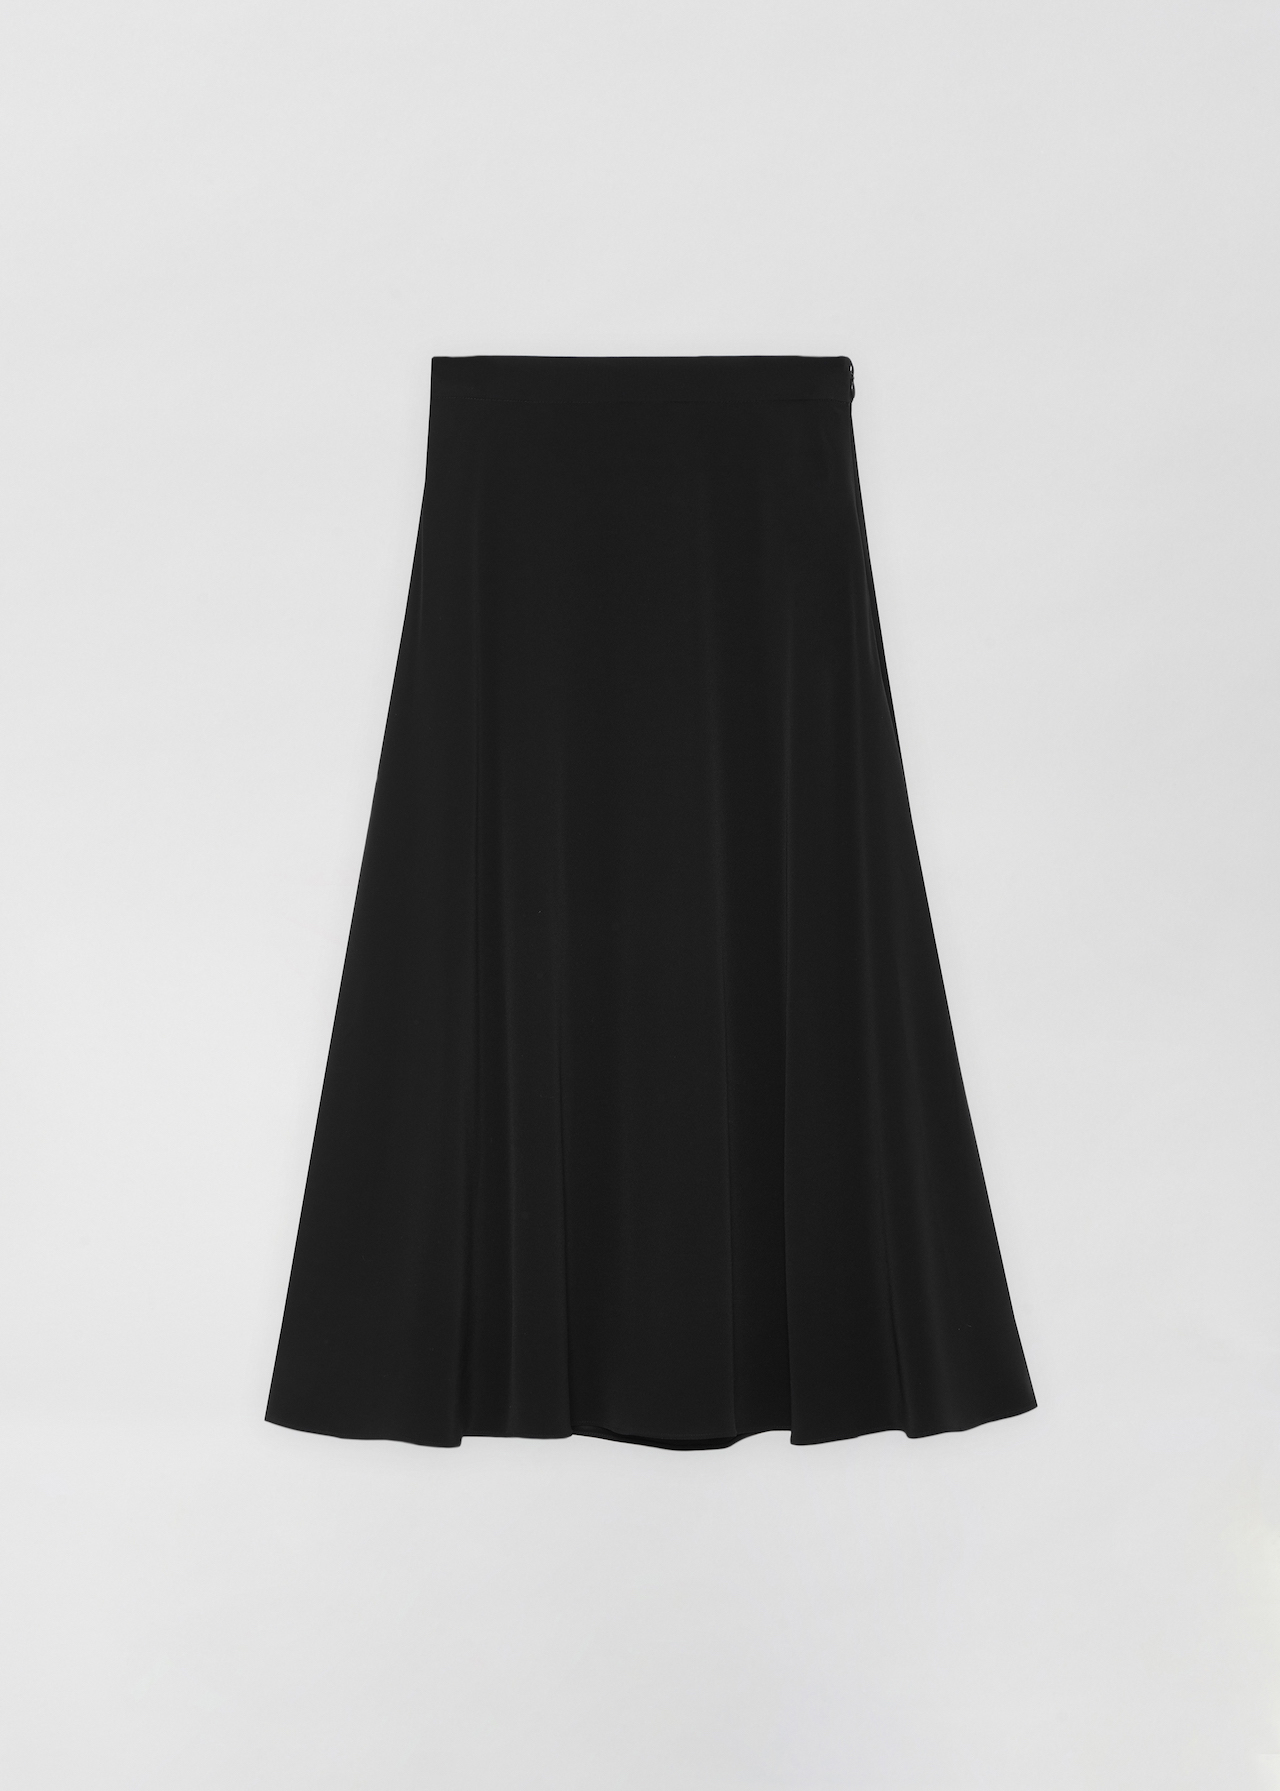 A-Line Skirt in Stretch Crepe - Ivory in Black by Co Collections